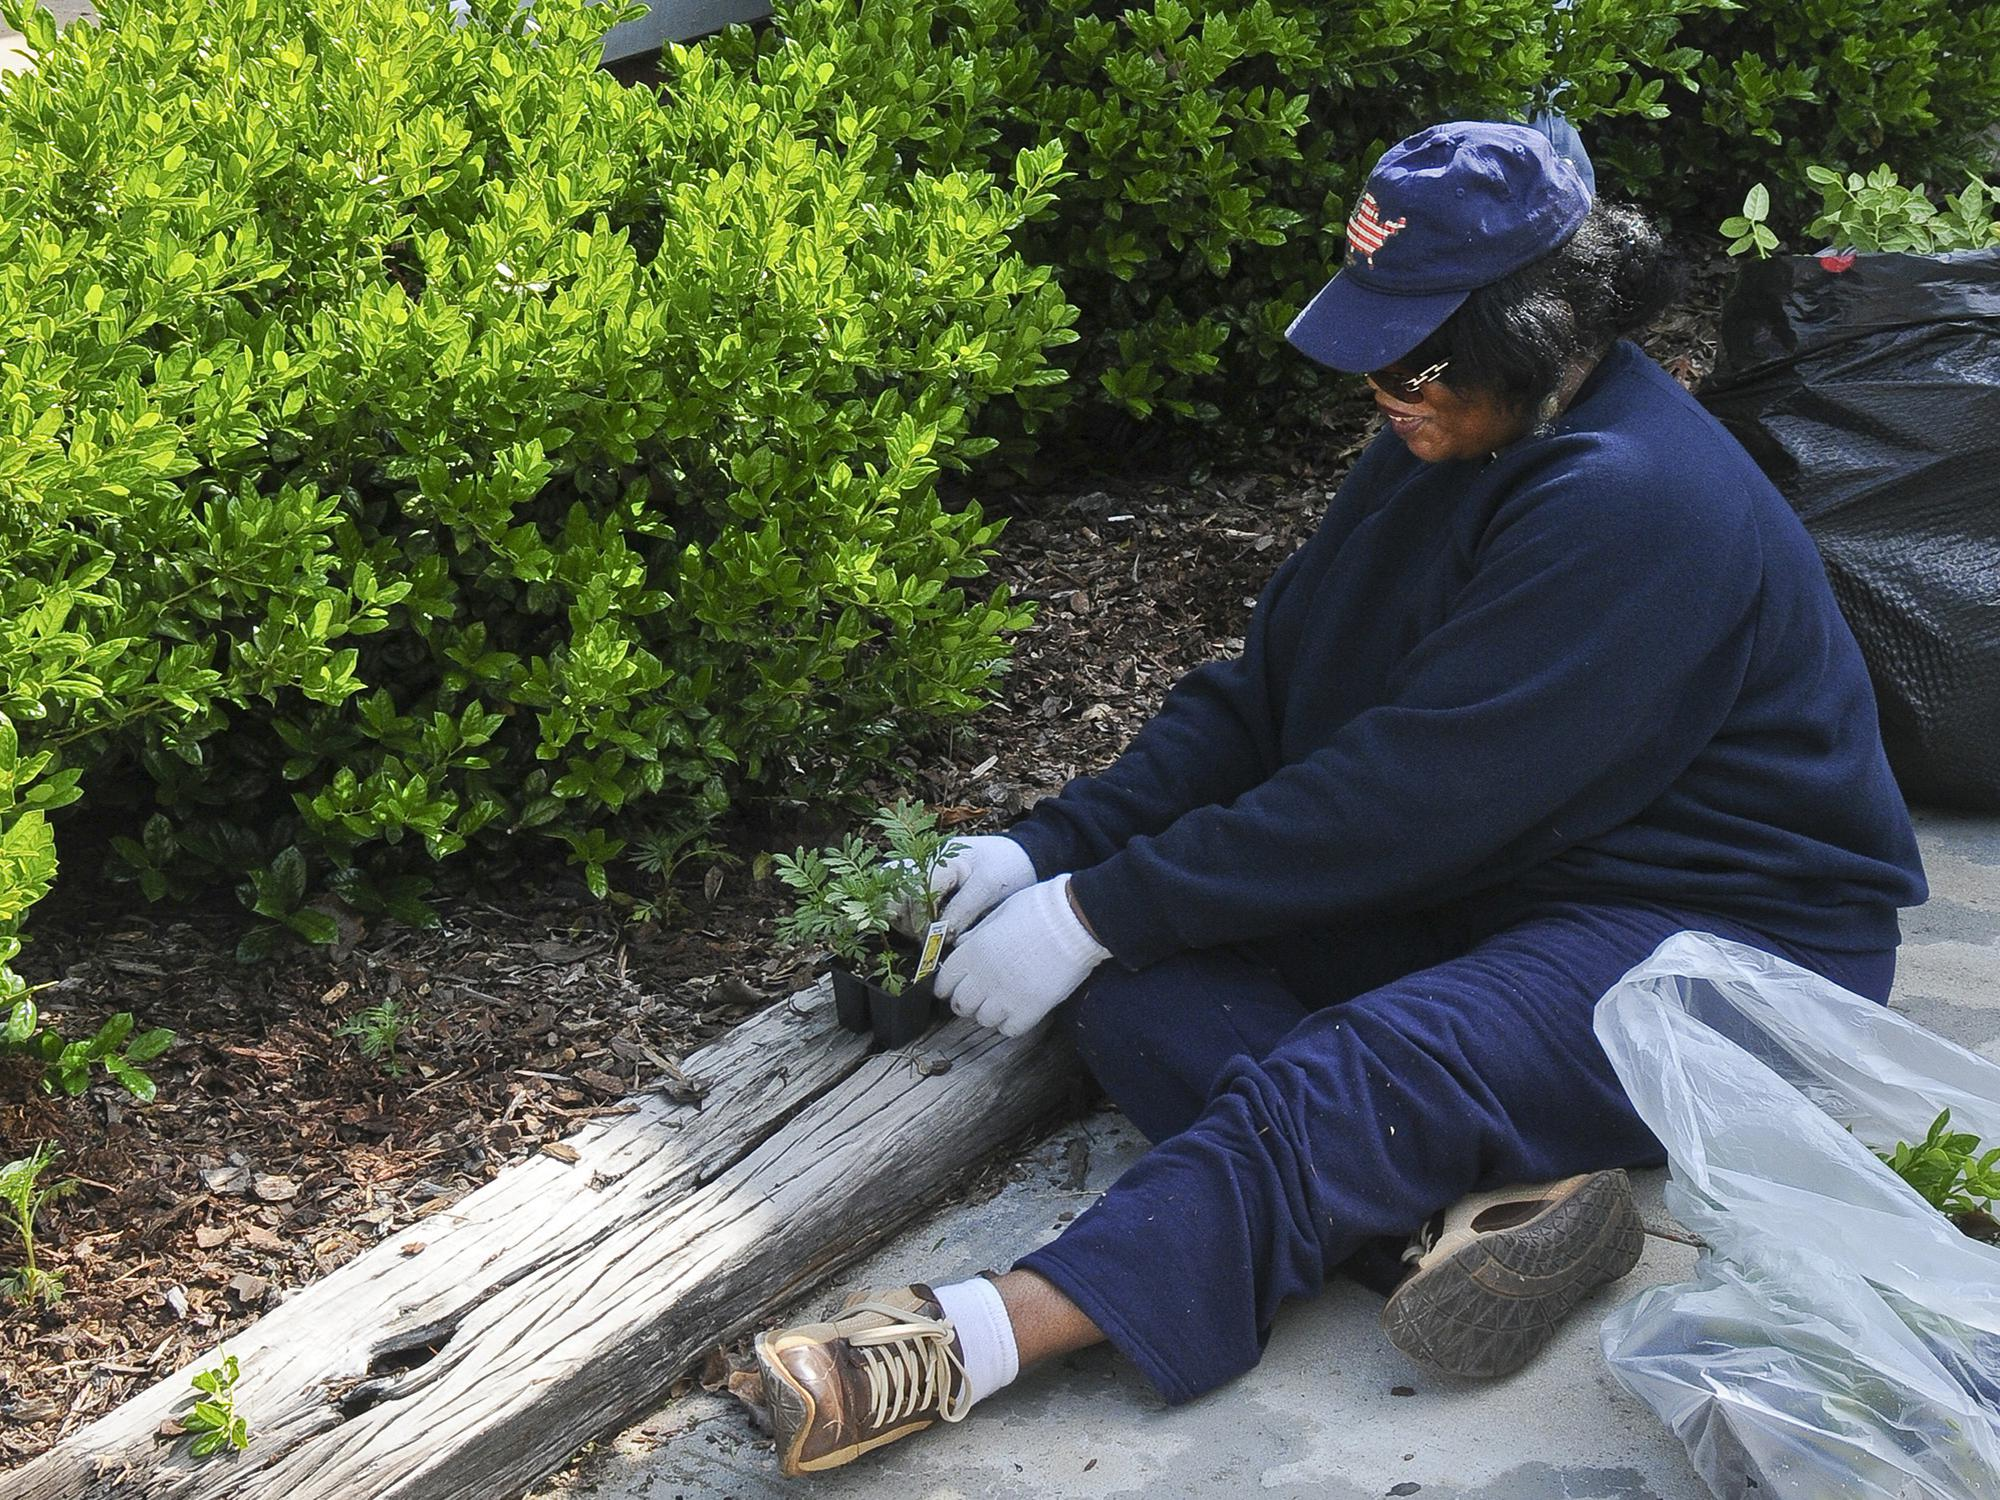 Real gardeners know the work is hard, but they consider sweat equity a reasonable price to pay to be able to enjoy their landscapes. (File Photo by MSU Extension)